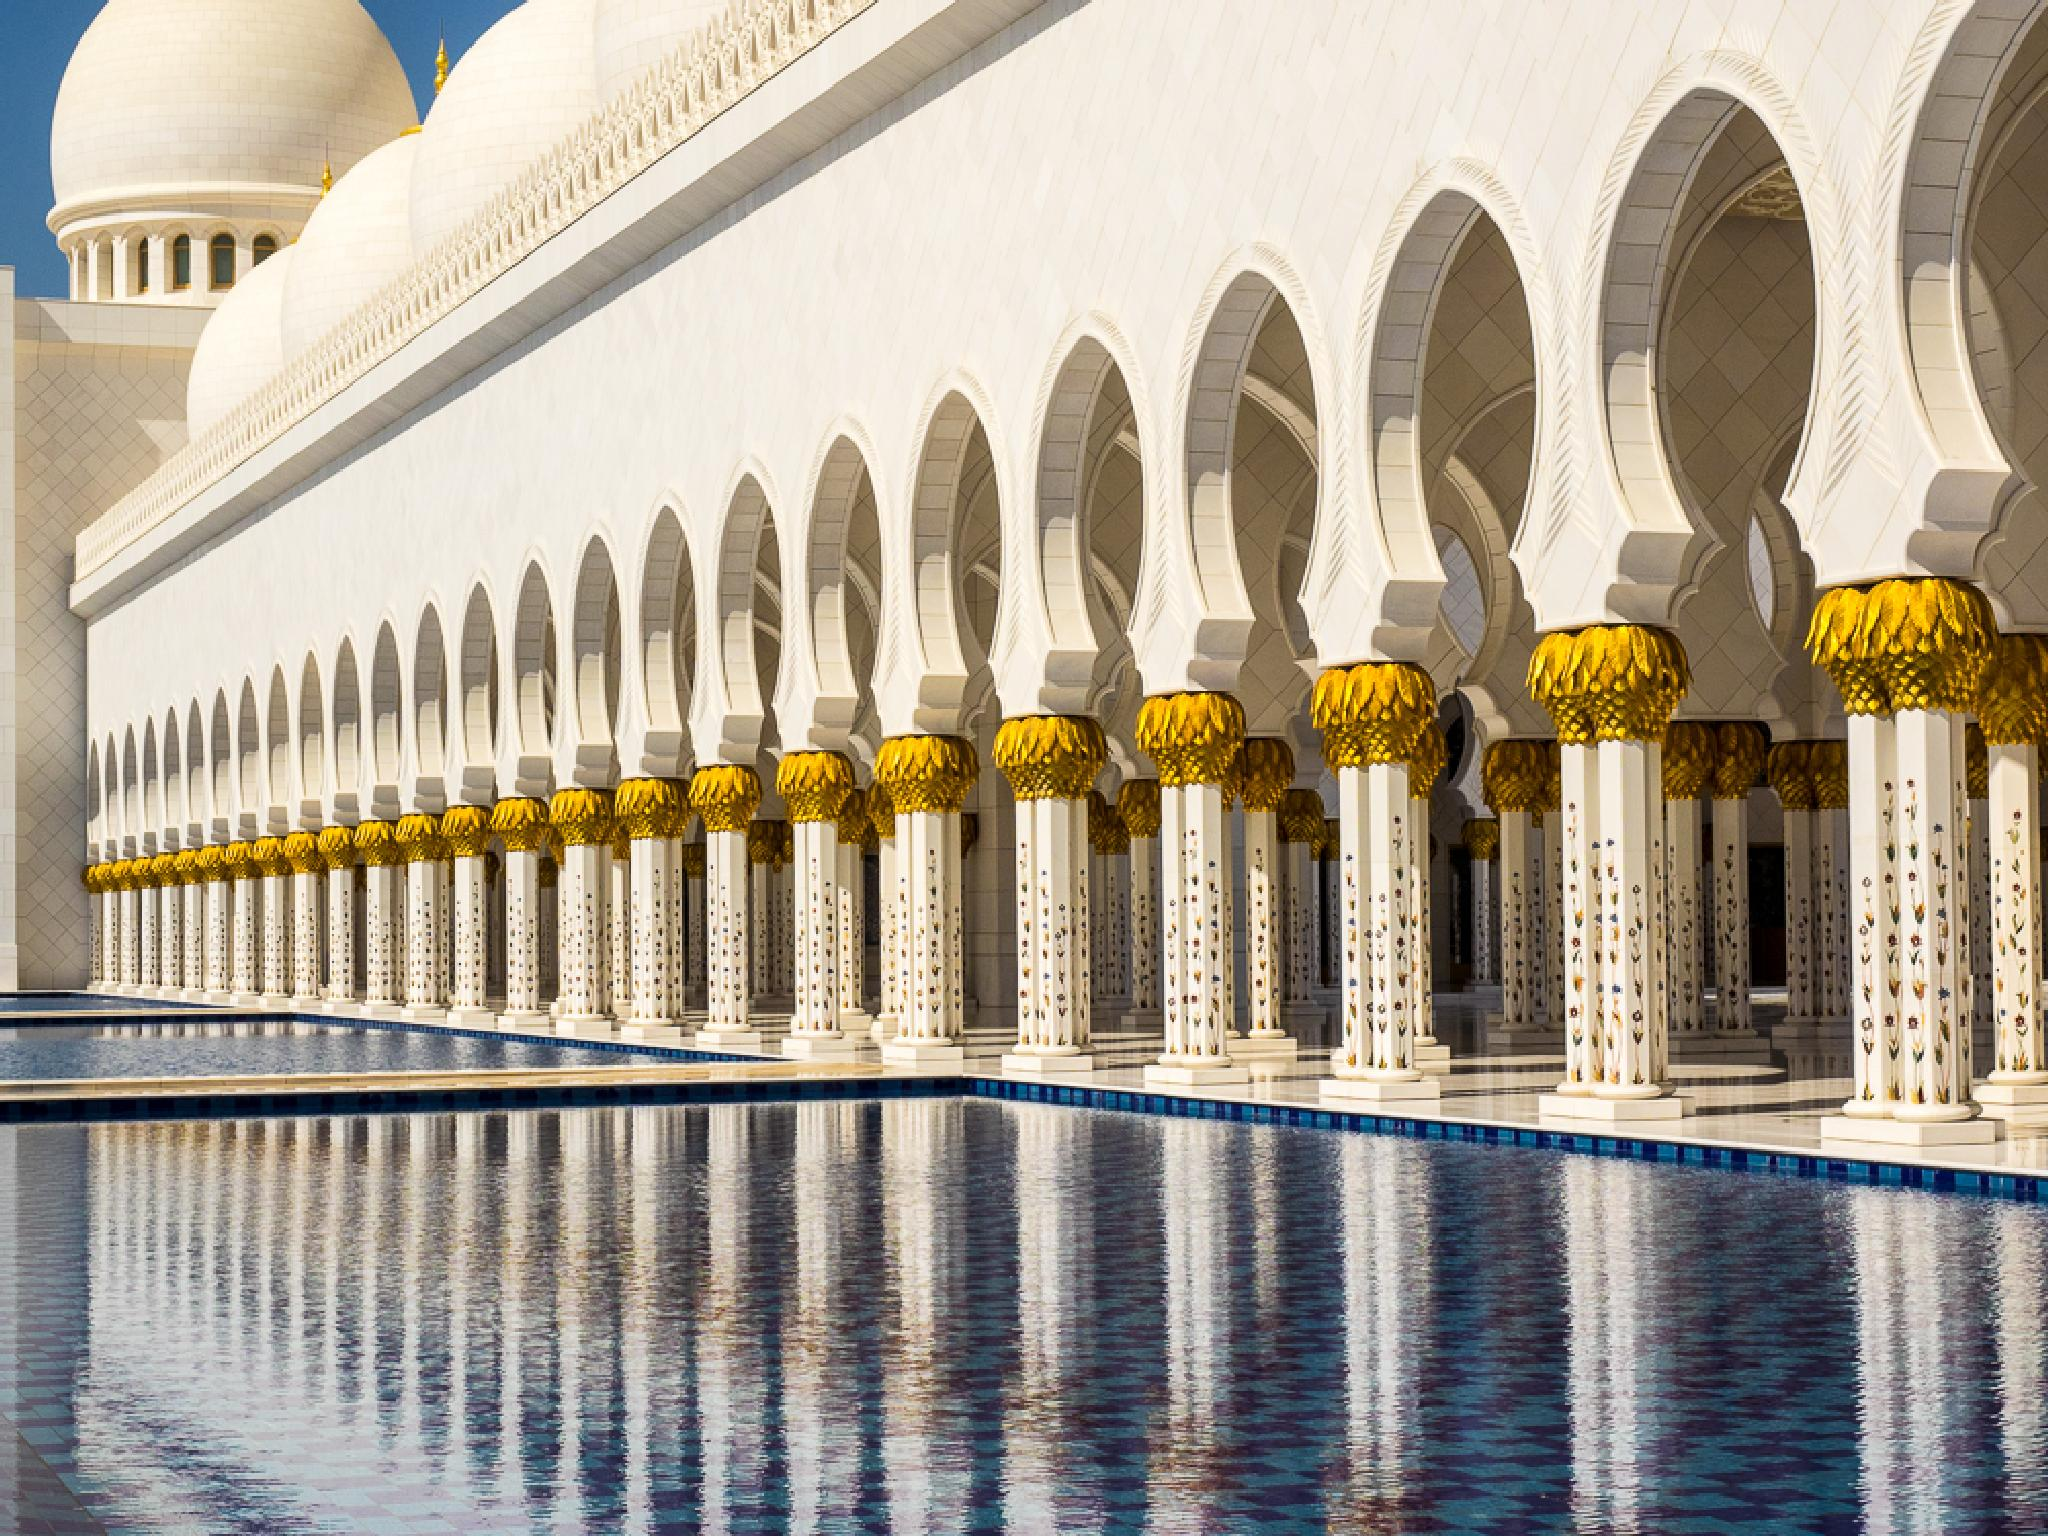 Abu Dhabi Grand Mosche by messner.harald